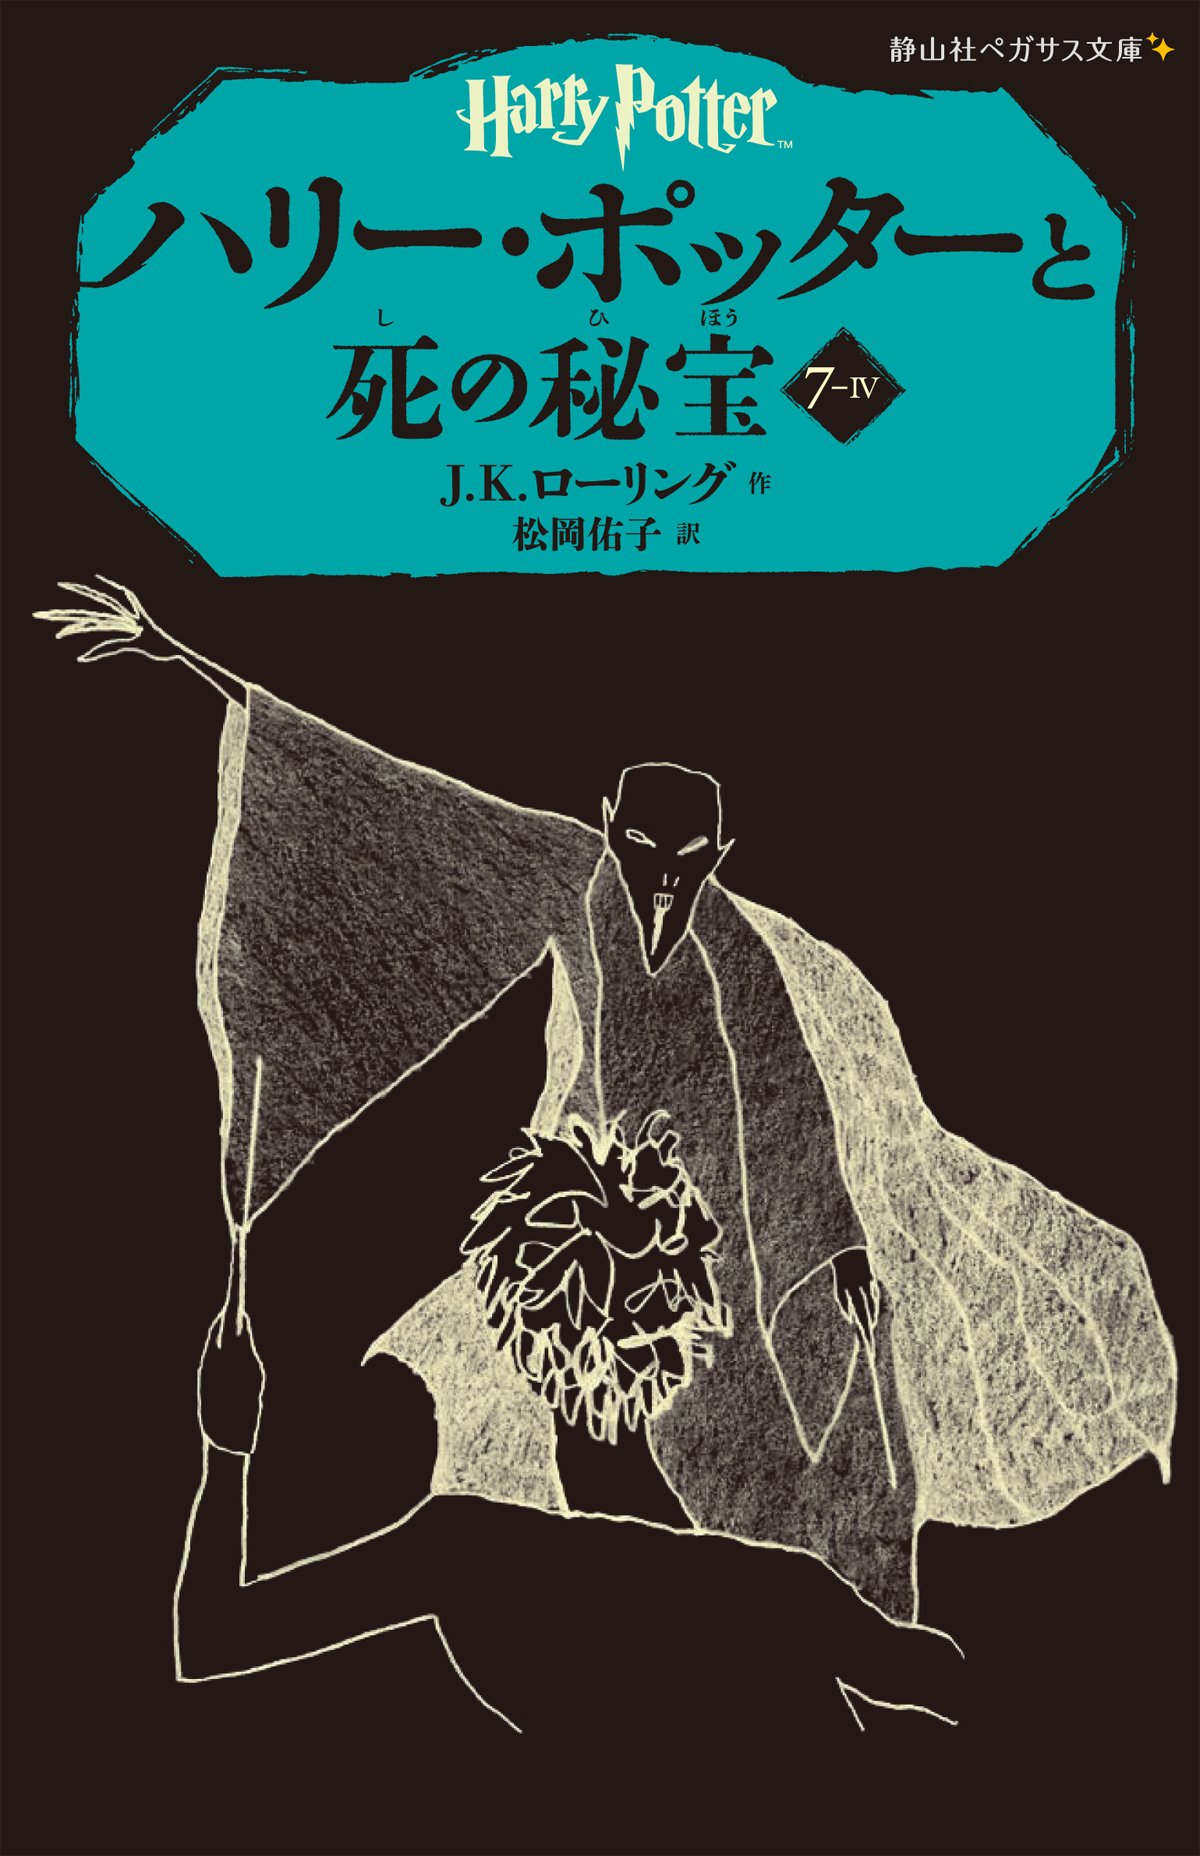 Read Online Harry Potter and the Deathly Hallows Vol. 4 of 4 (Japanese Edition) pdf